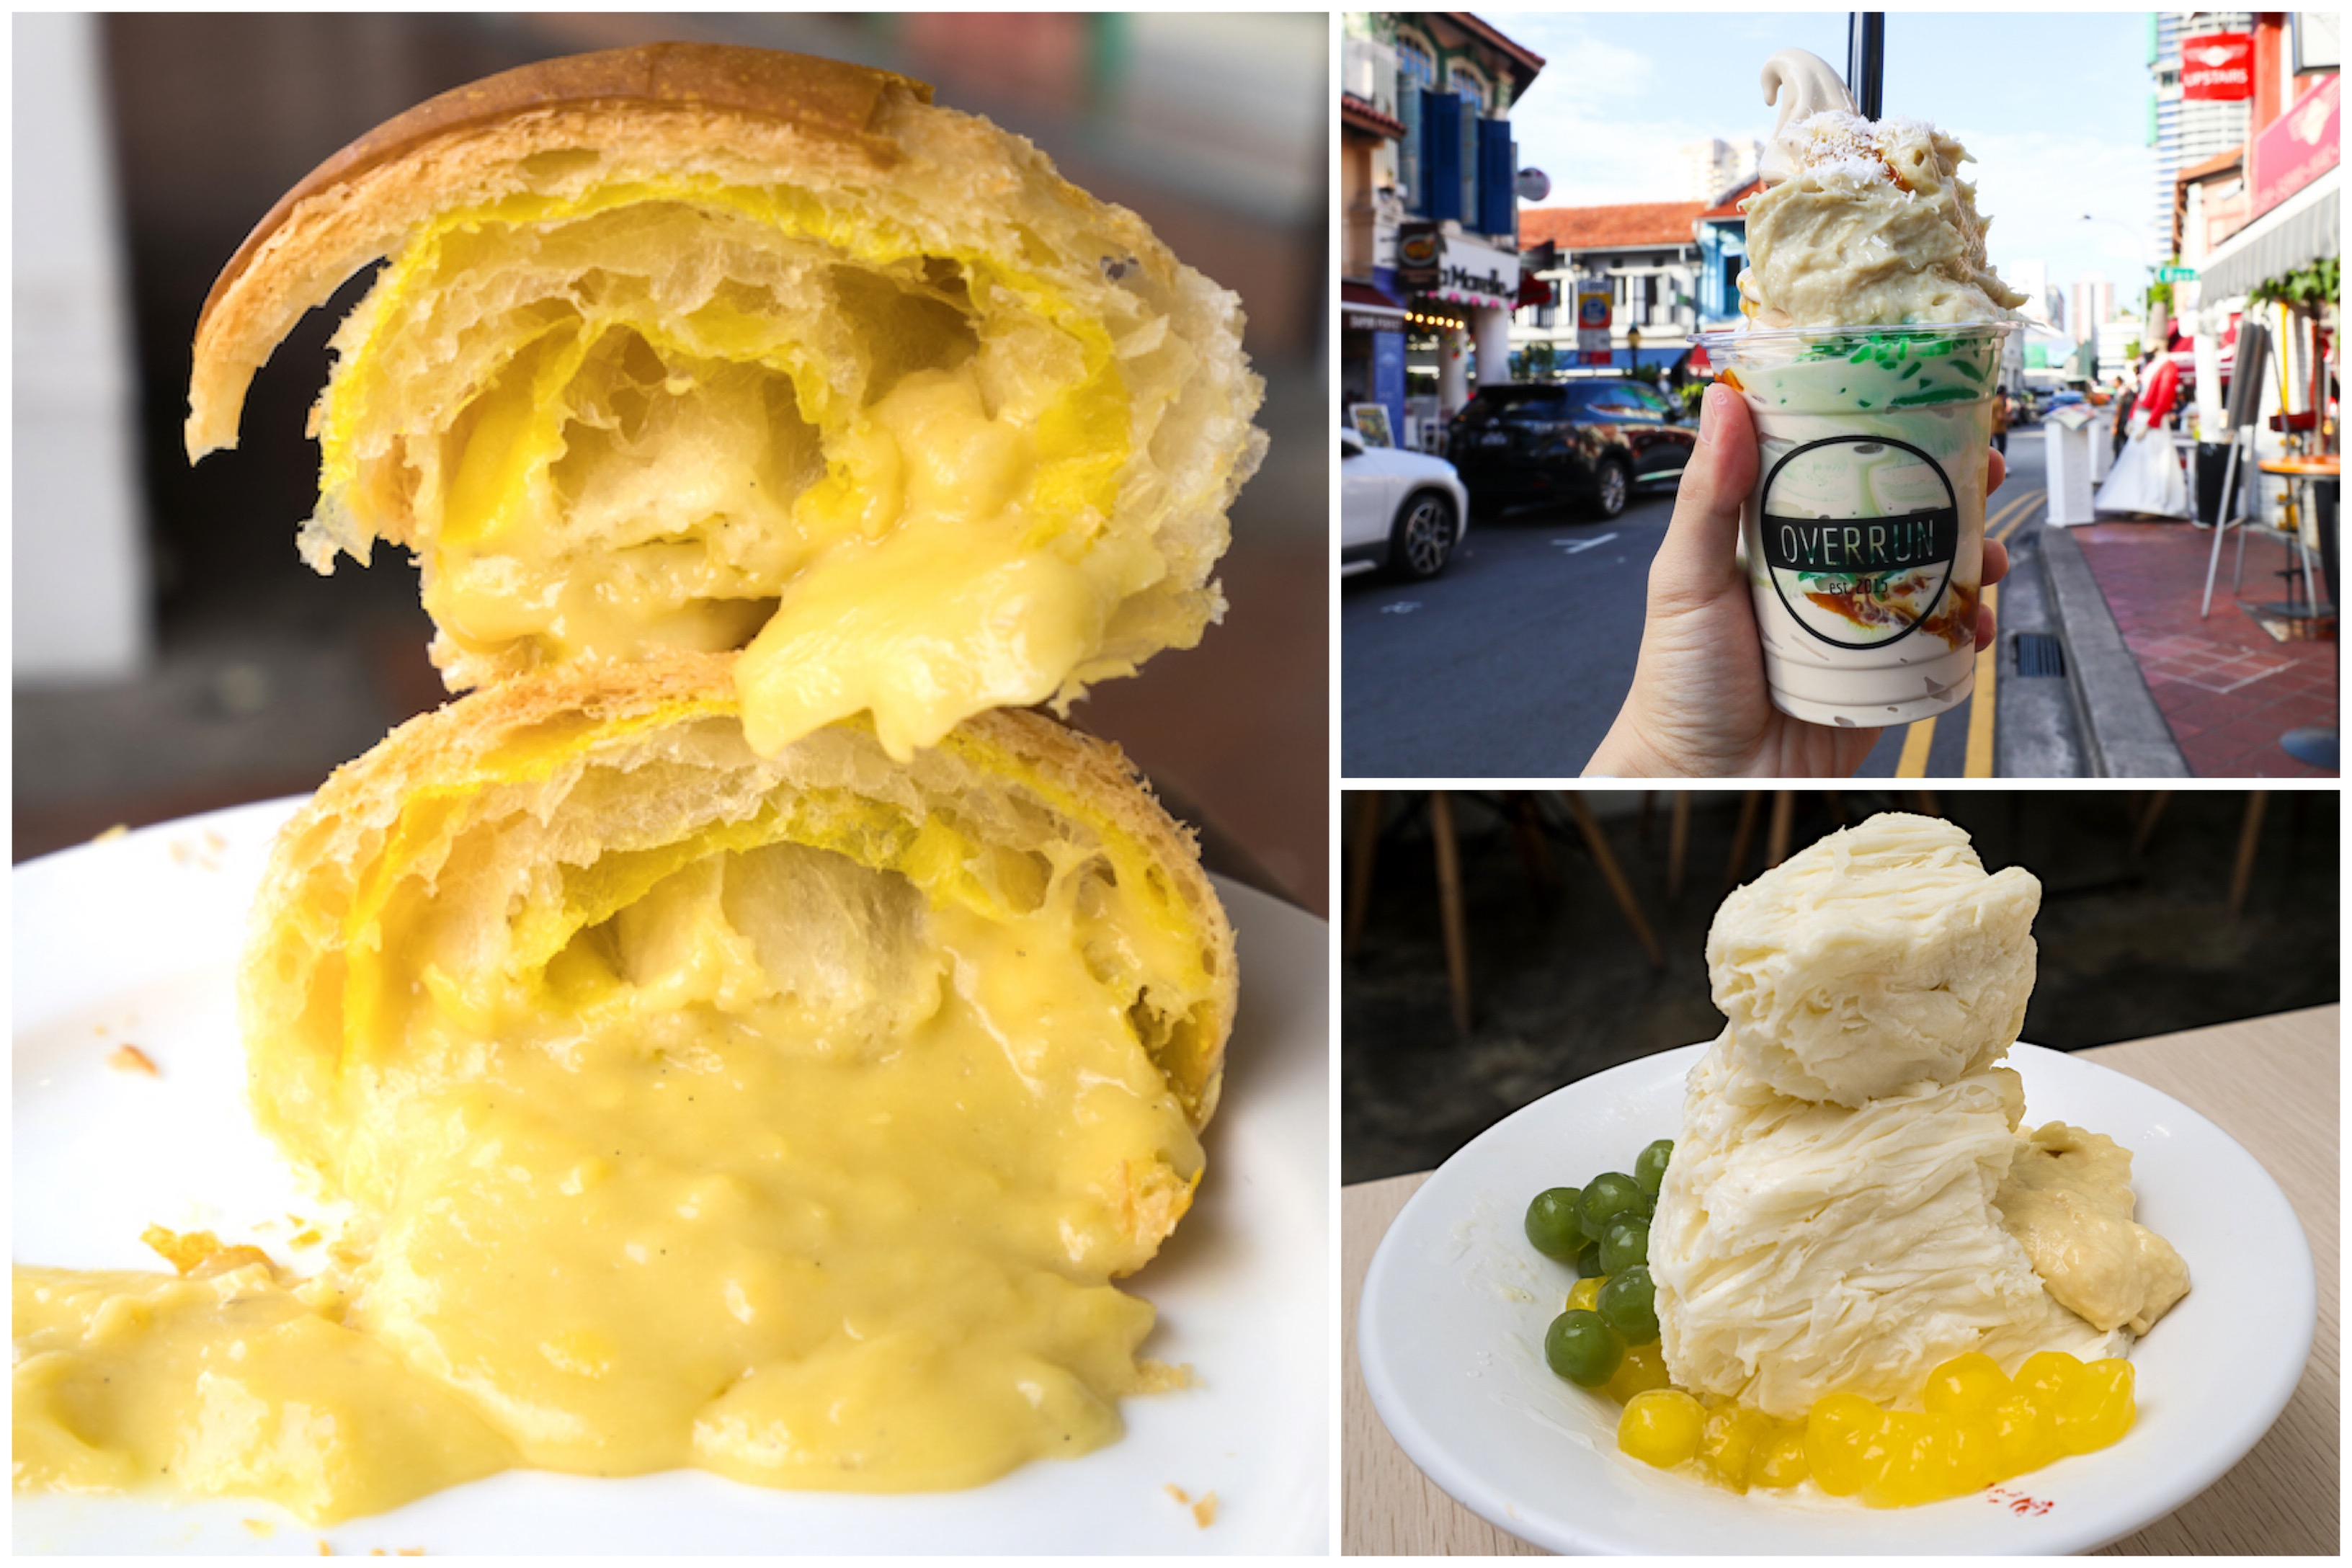 10 Durian Desserts in Singapore - Mao Shan Wang Lava Croissant, Durian Kaya Toast And More. Ultimate Guide To The King Of Fruits